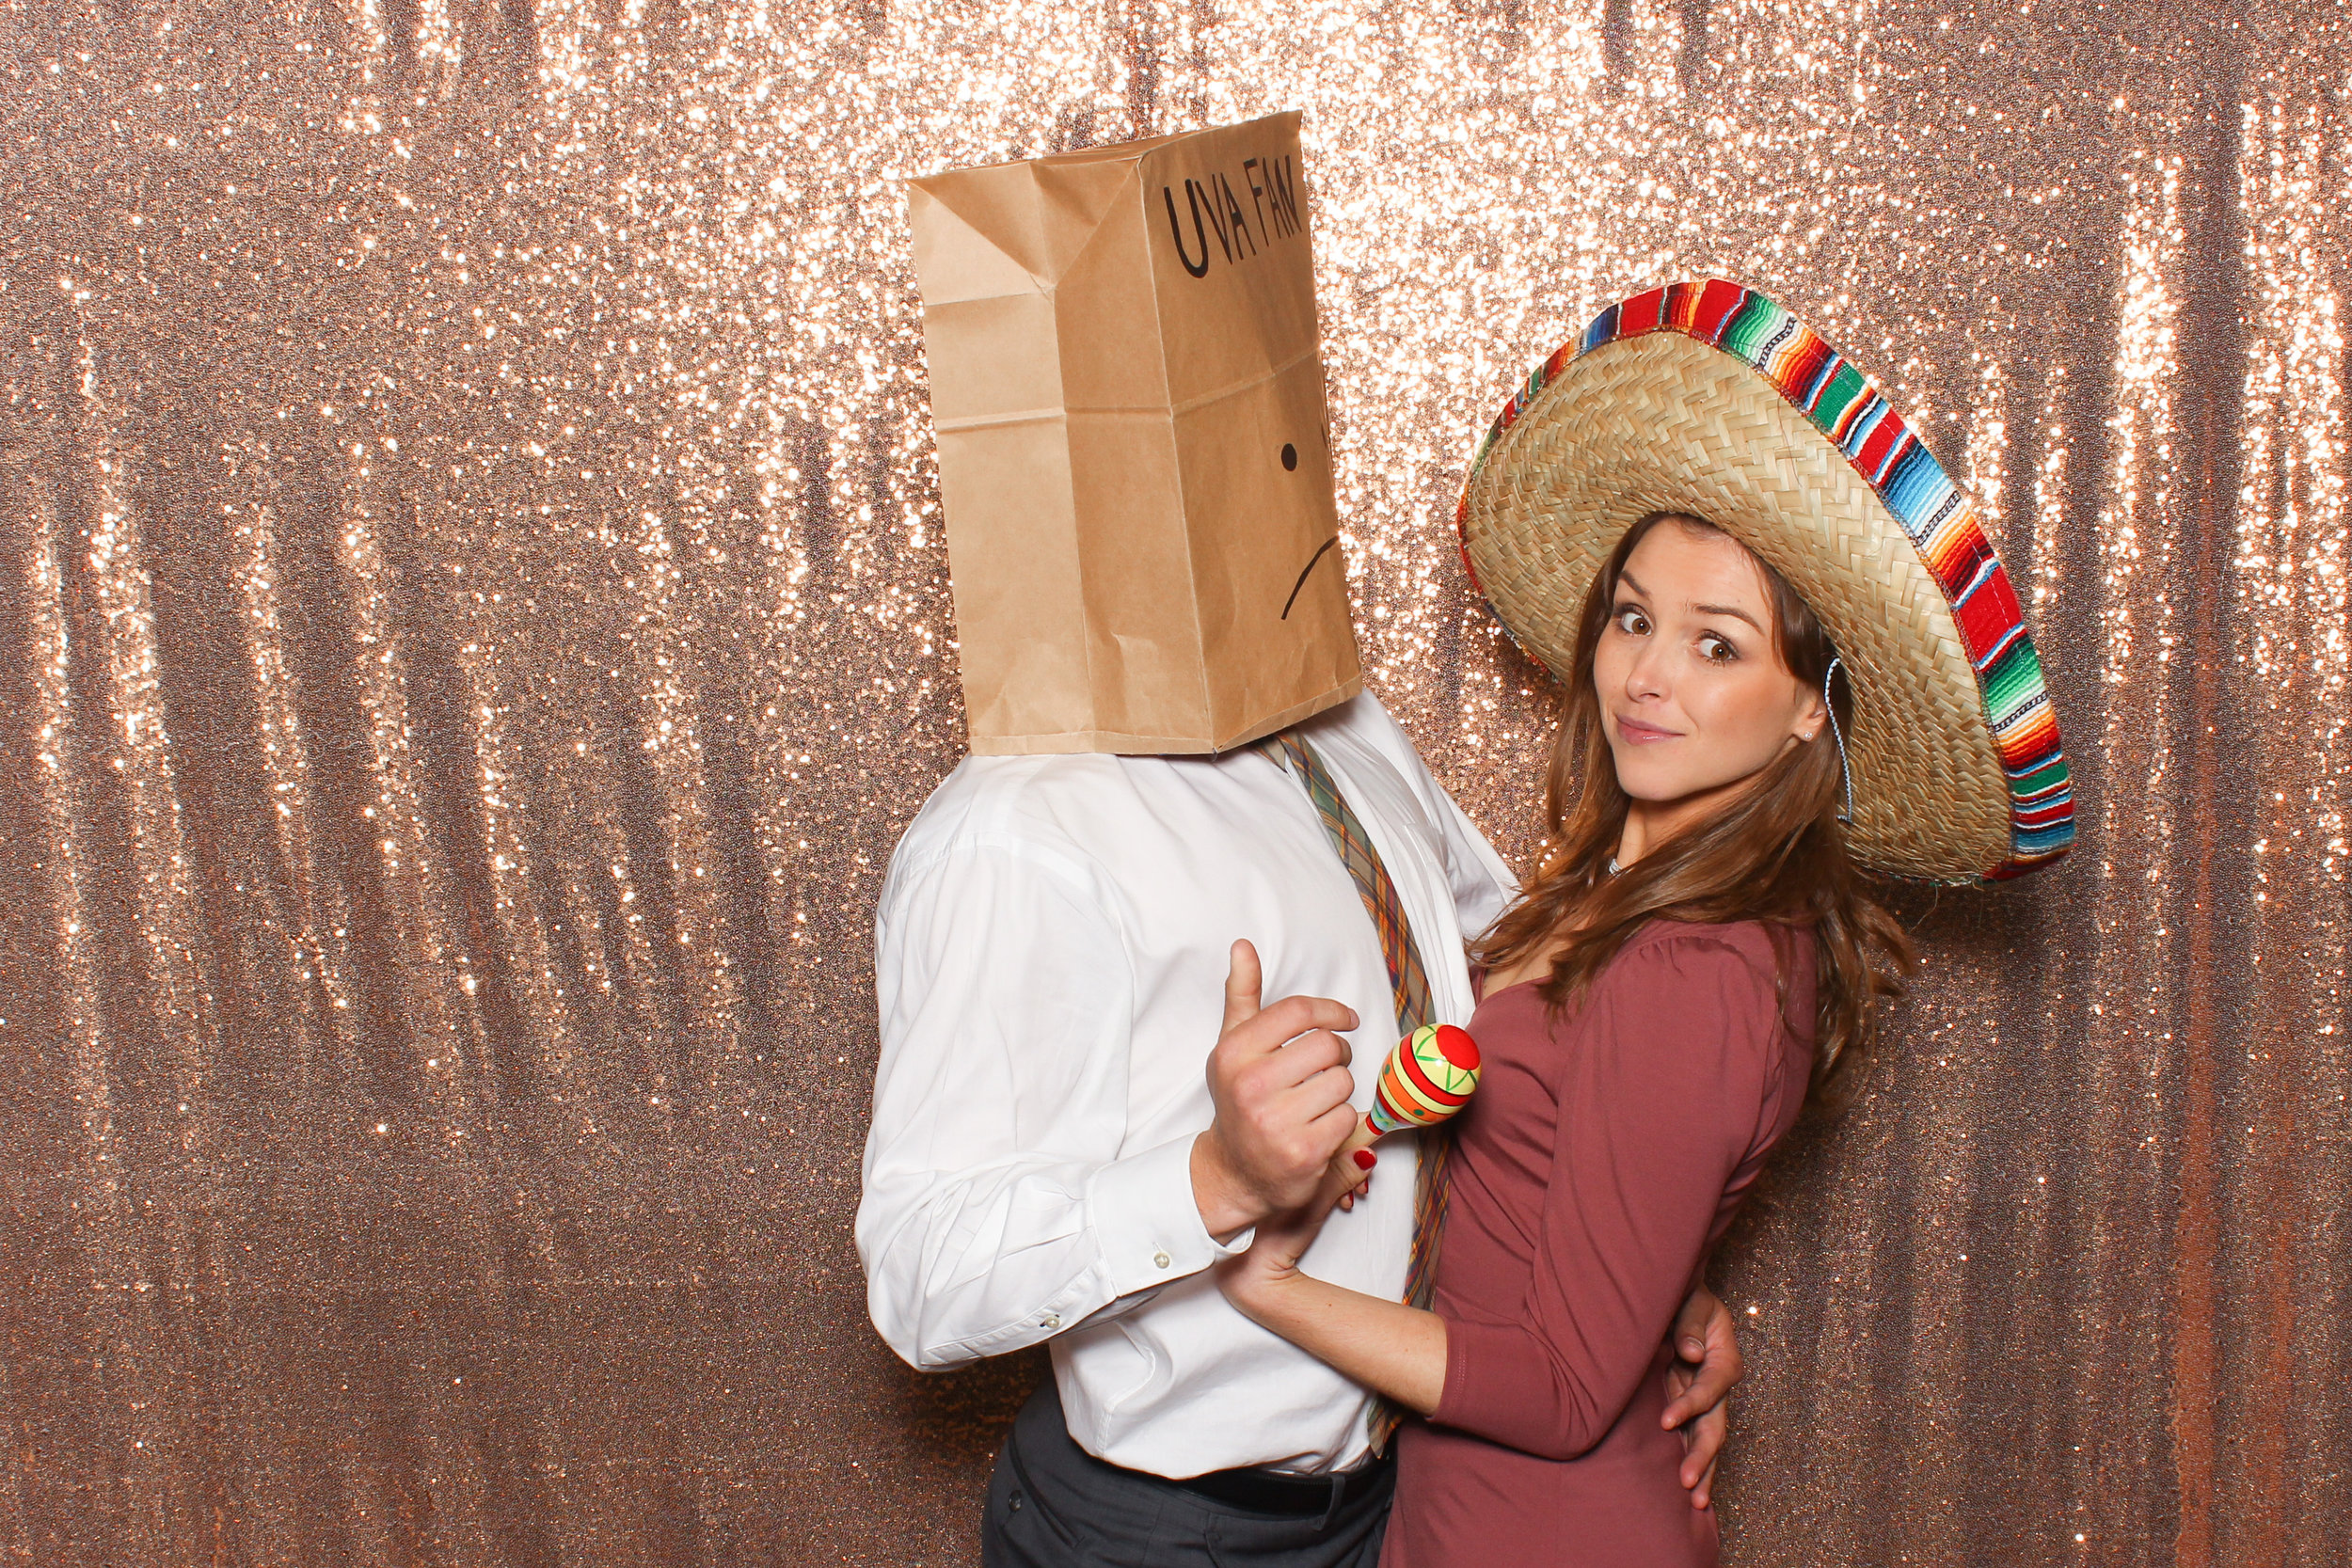 Boxy Booth Photo Booth Company - Moon Wintergreen resort (209 of 319).jpg